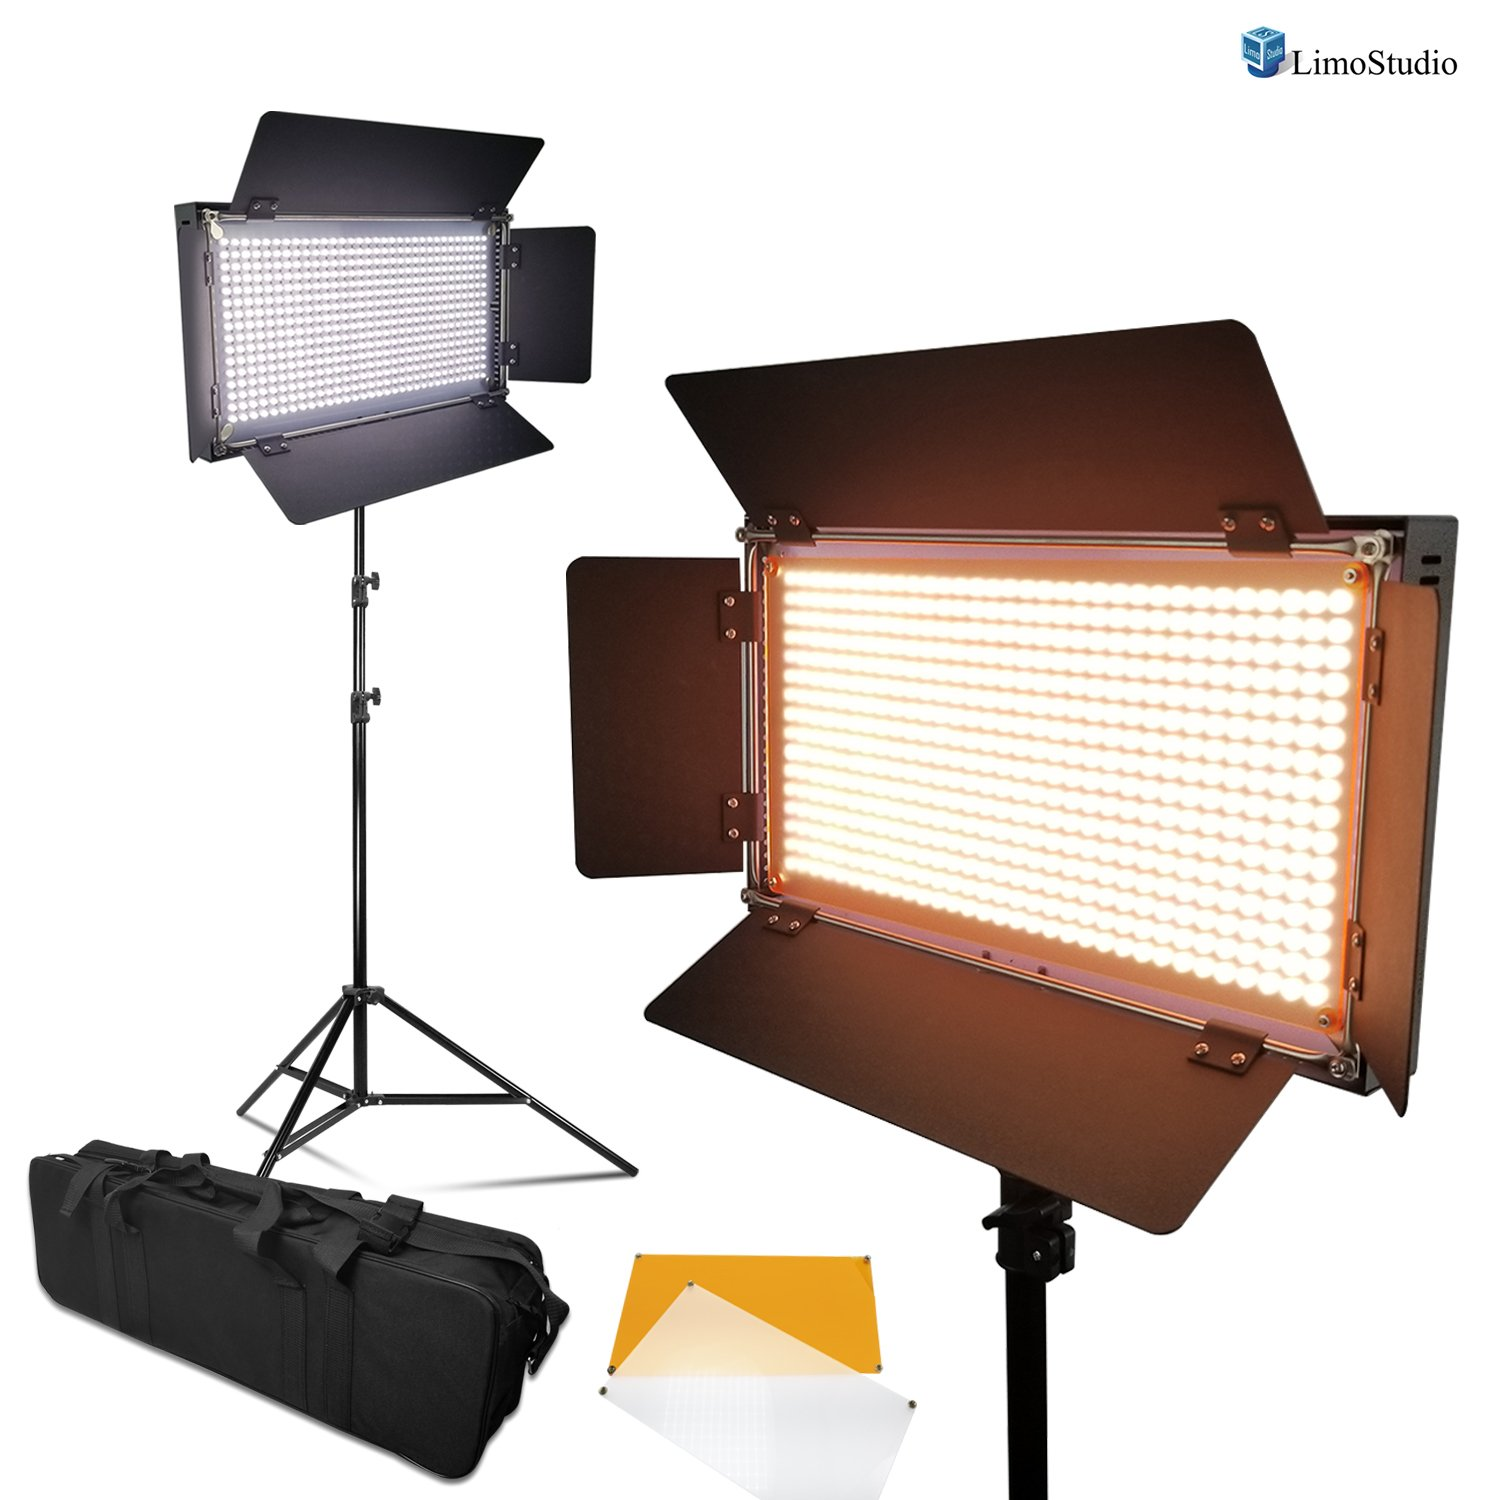 LimoStudio 2-Pack Dimmable LED Photography Photo Video Light Panel, LED Lighting Kit for Photo Video Studio, Selectable Lighting Zone Control, AGG1089V2 by LimoStudio